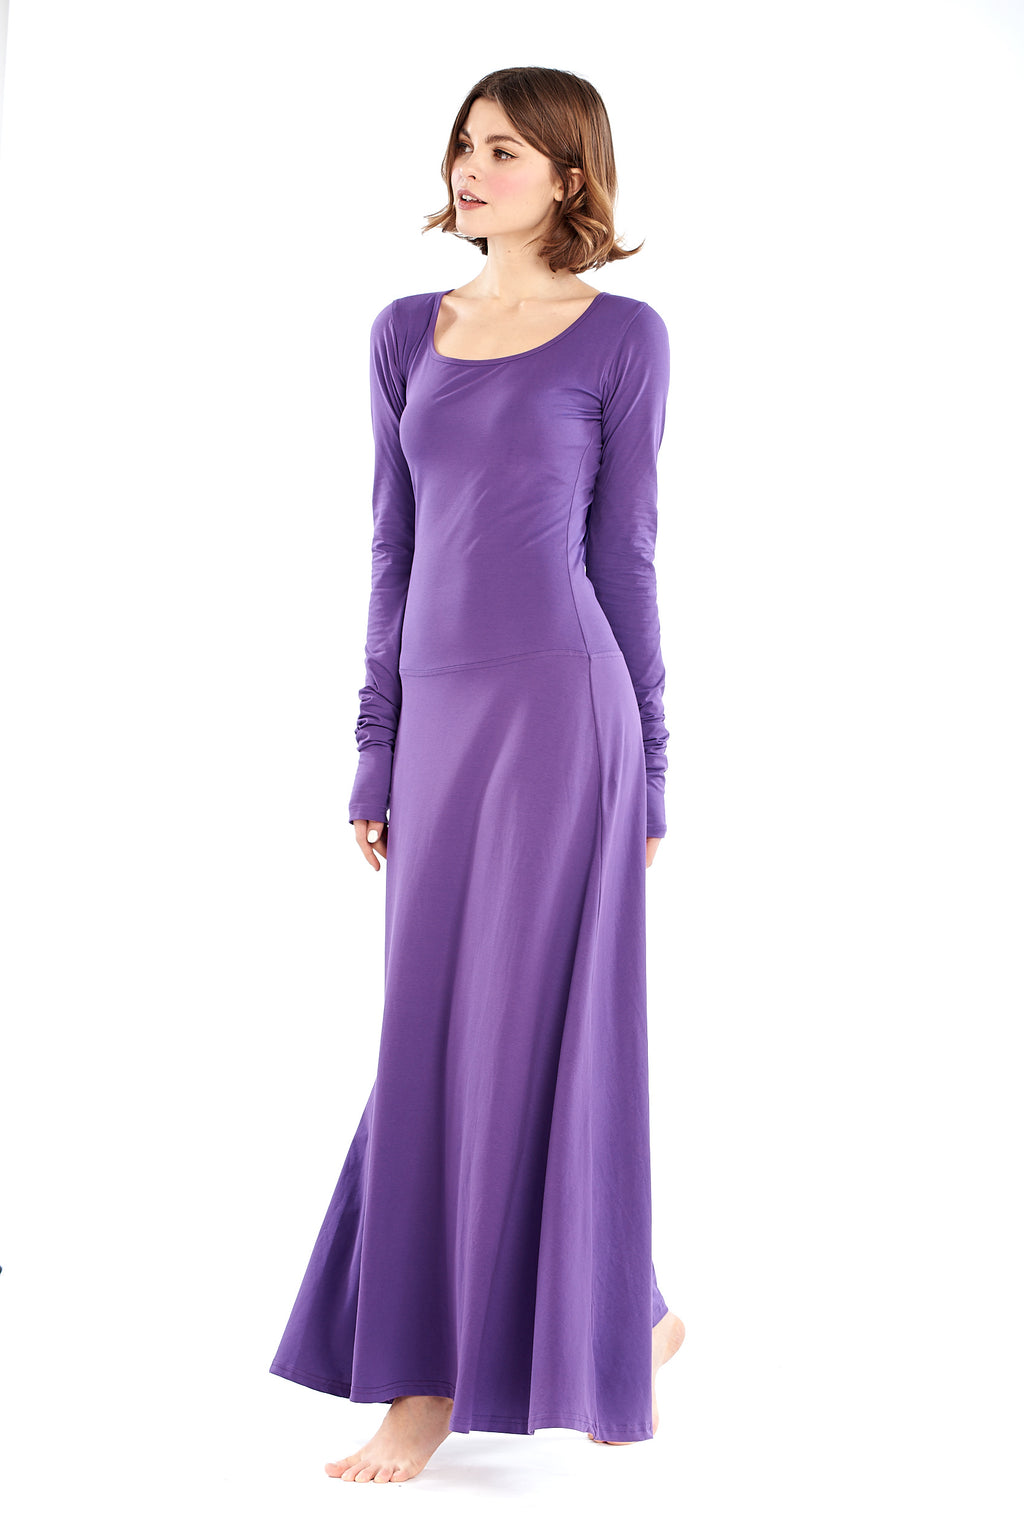 Organic Bamboo Avalon Hooded Dress Bright Purple - MUDRA